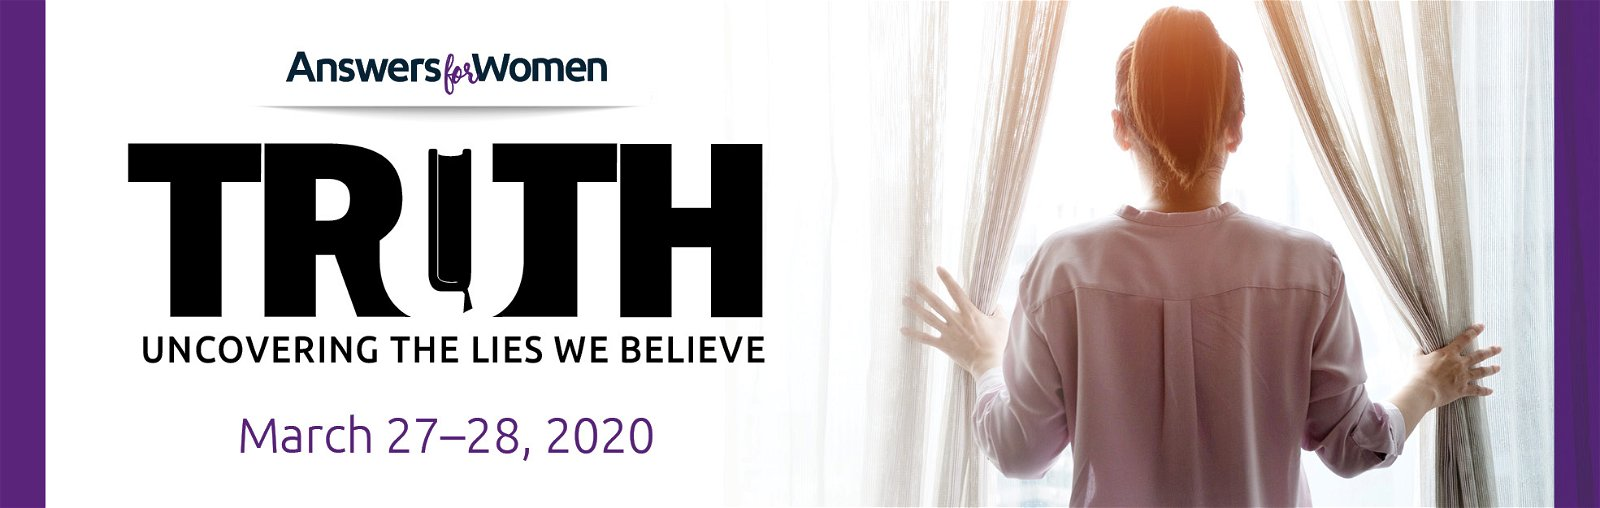 Enter to win a FREE registration to the 2020 Answers For Women conference!